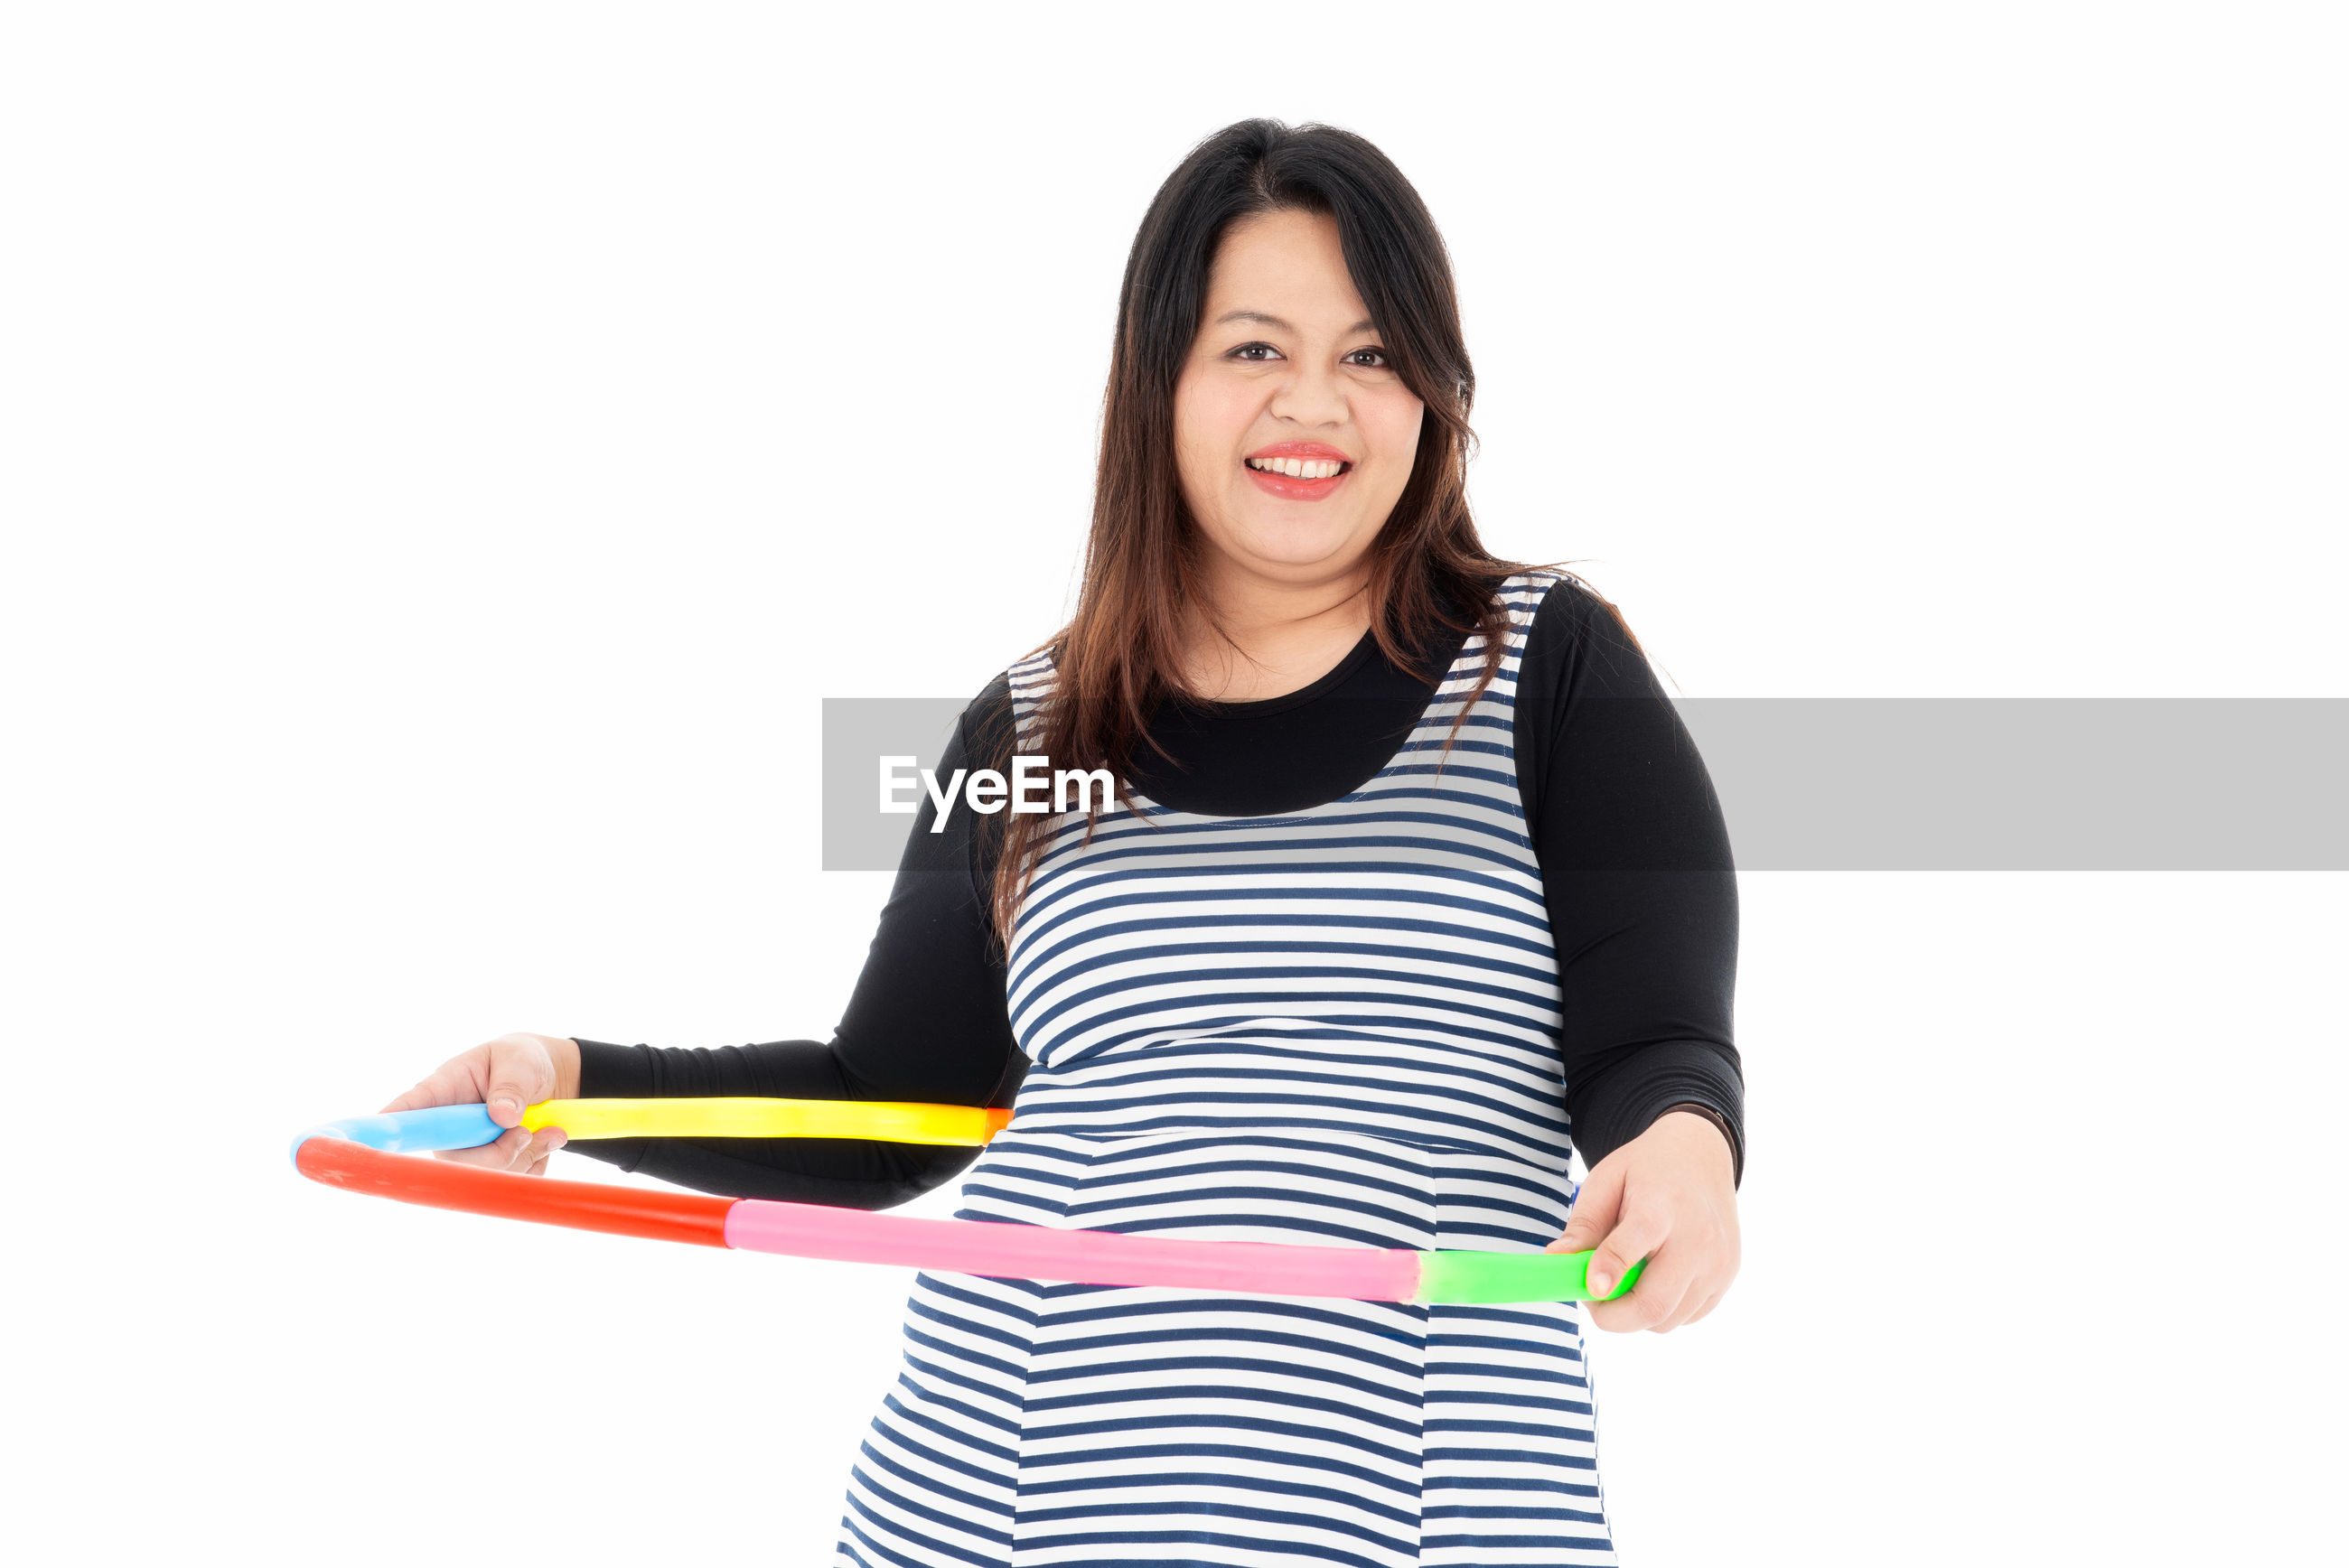 Portrait of smiling woman holding plastic hoop while standing against white background